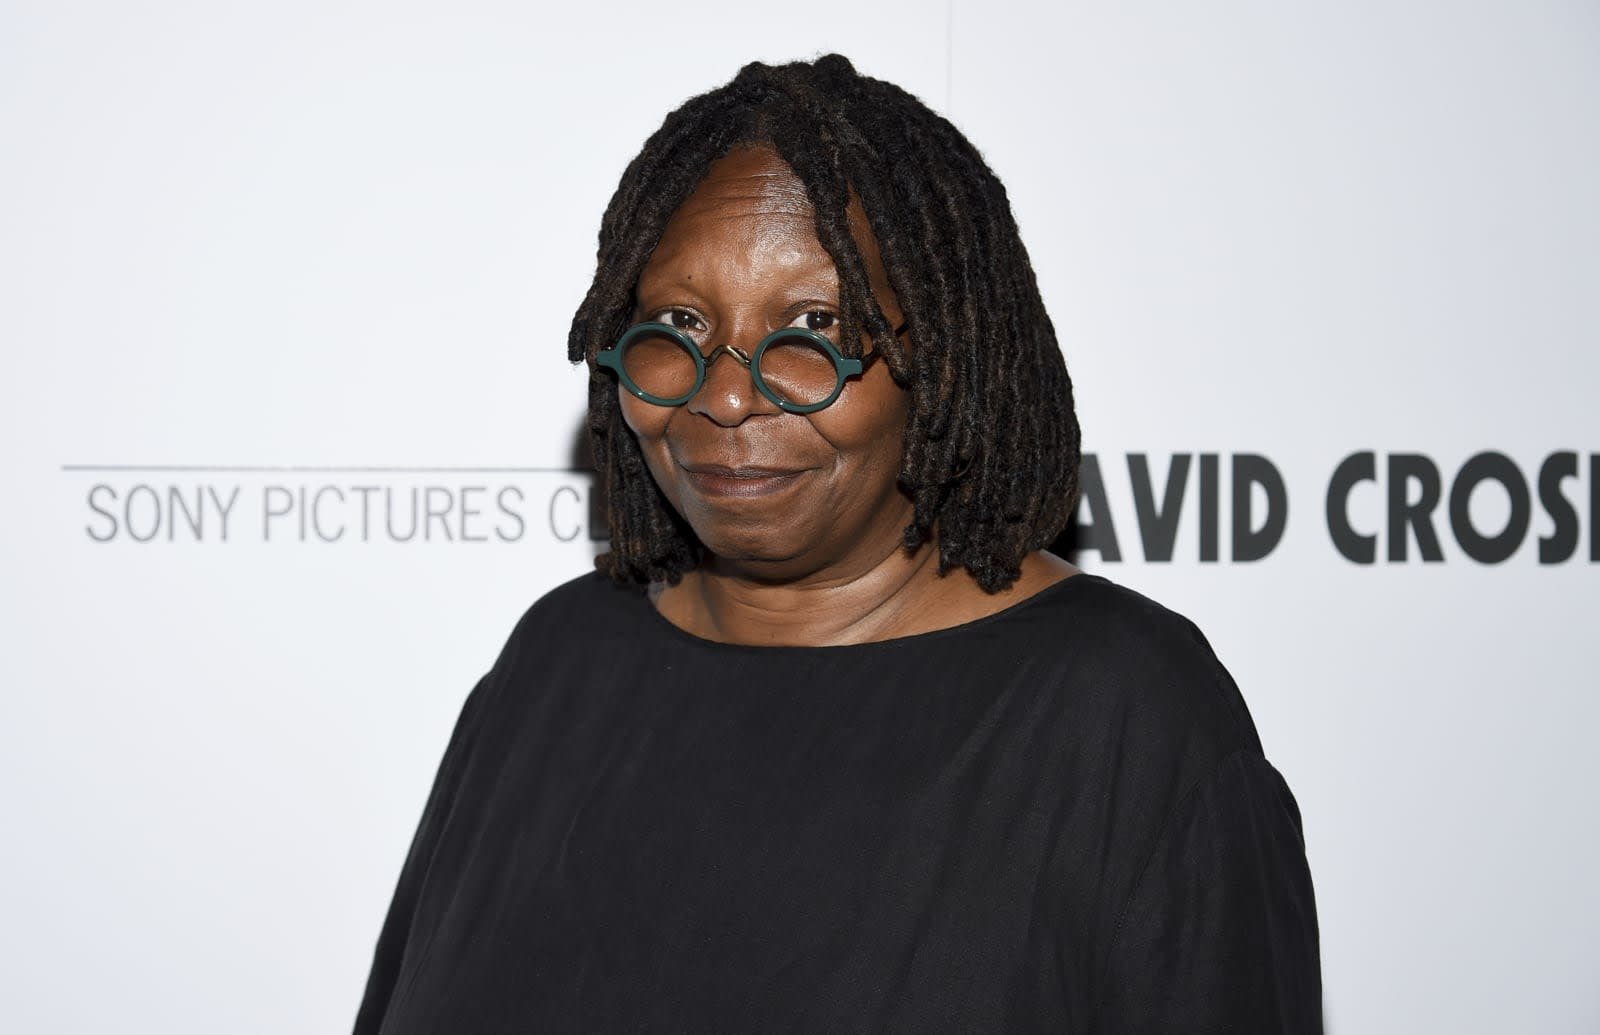 Whoopi Goldberg will star in CBS All Access series 'The Stand'